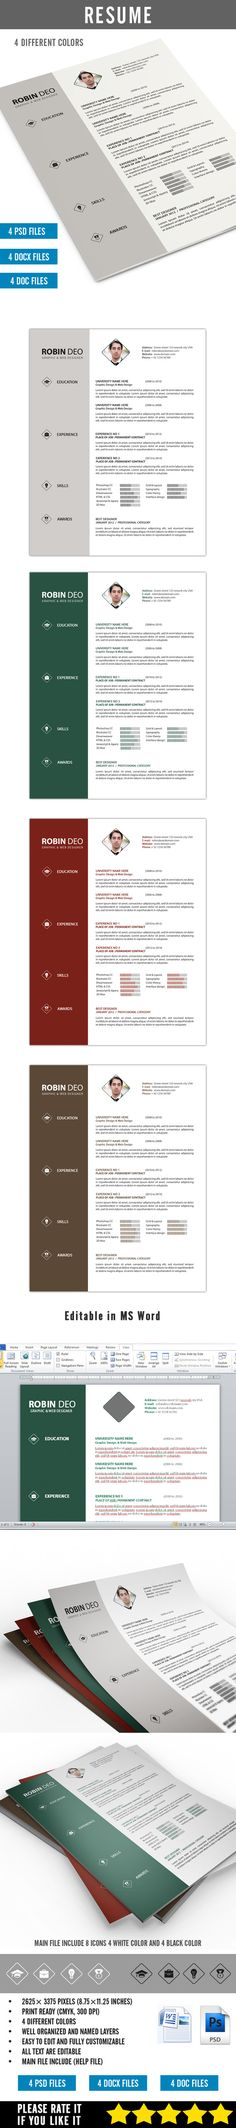 Resume Template PSD, InDesign INDD, AI Illustrator, MS Word - illustrator resume